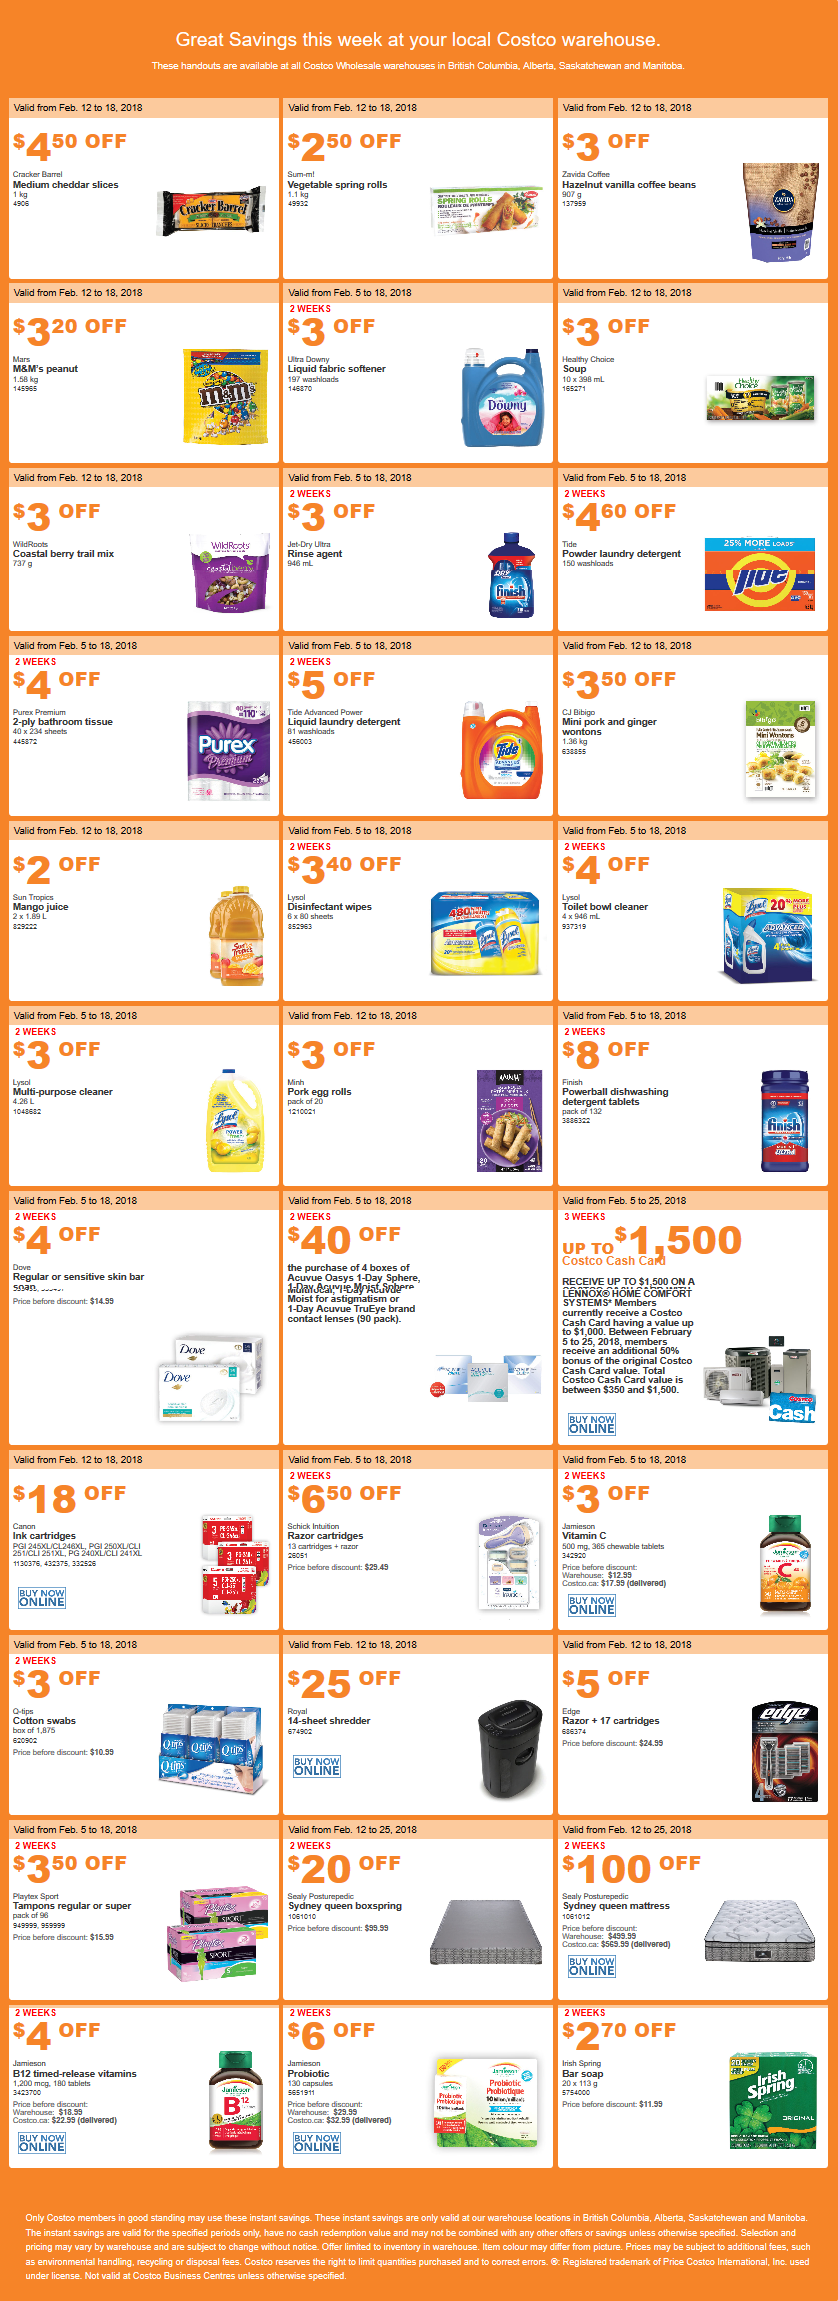 Costco West Sale Items (1 of 2) for February 12-18, 2018 for BC